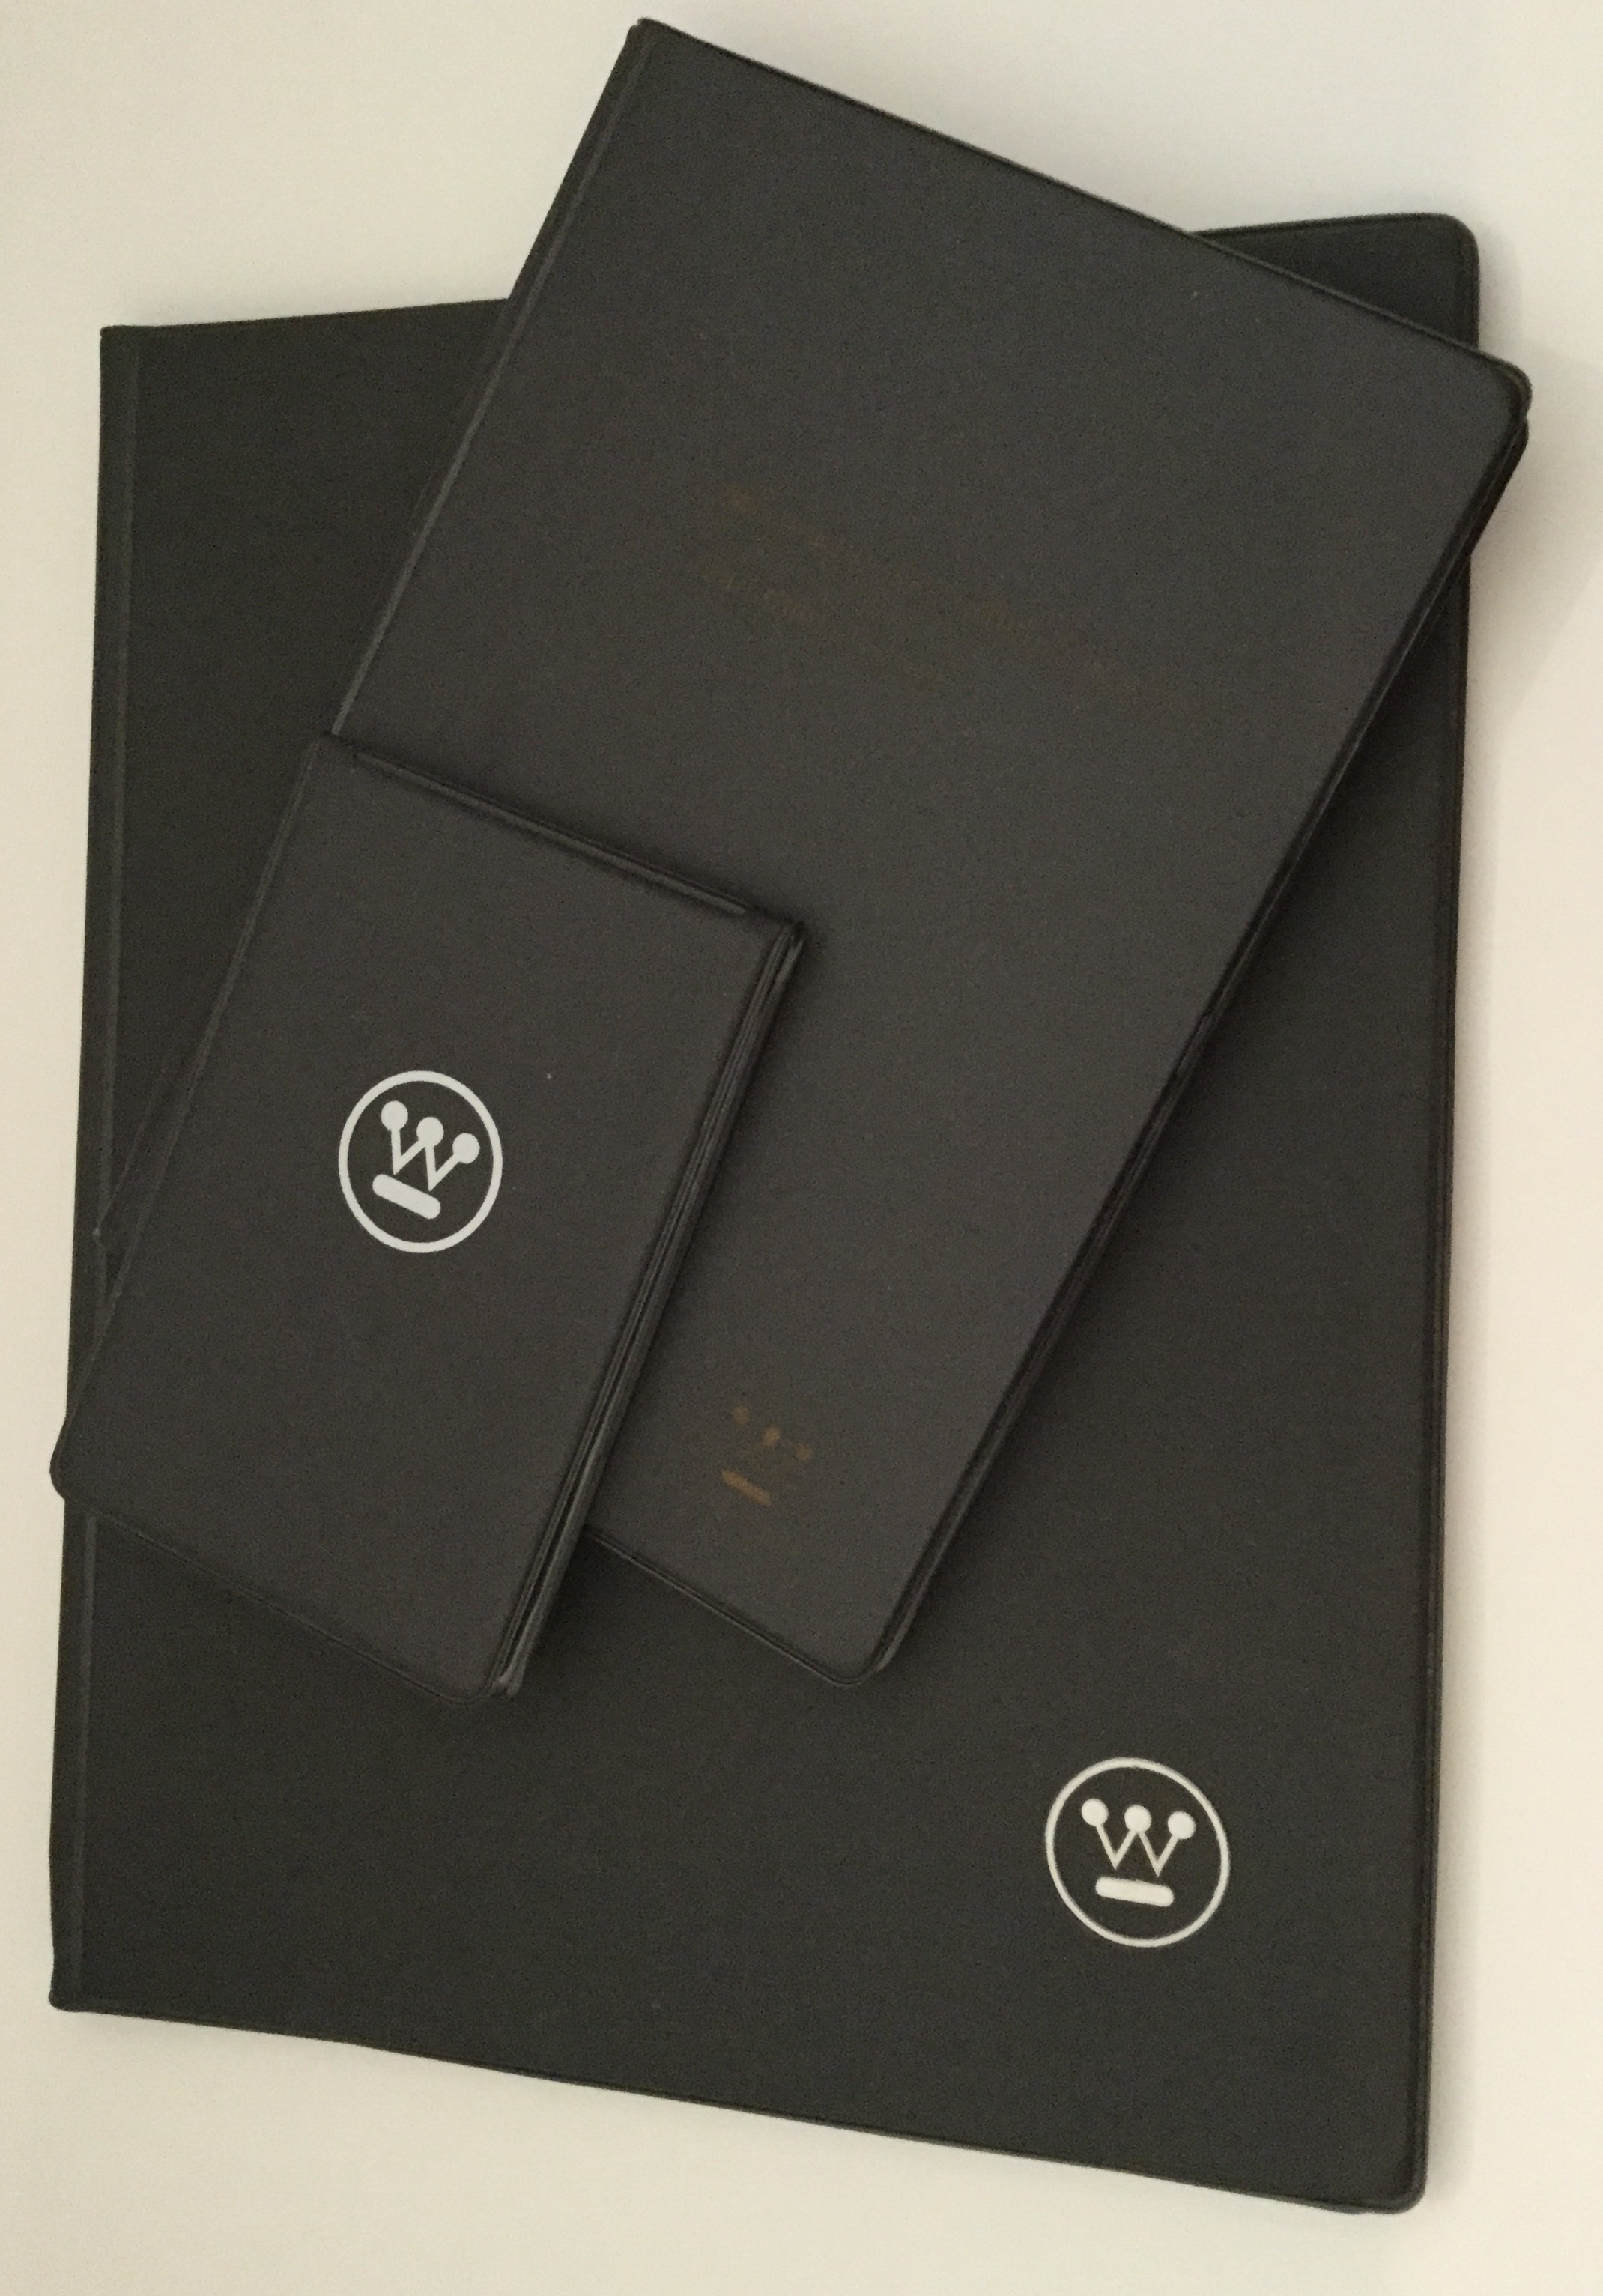 The two larger portfolios belonged to my dad and I collected the smallest one. I use these often.